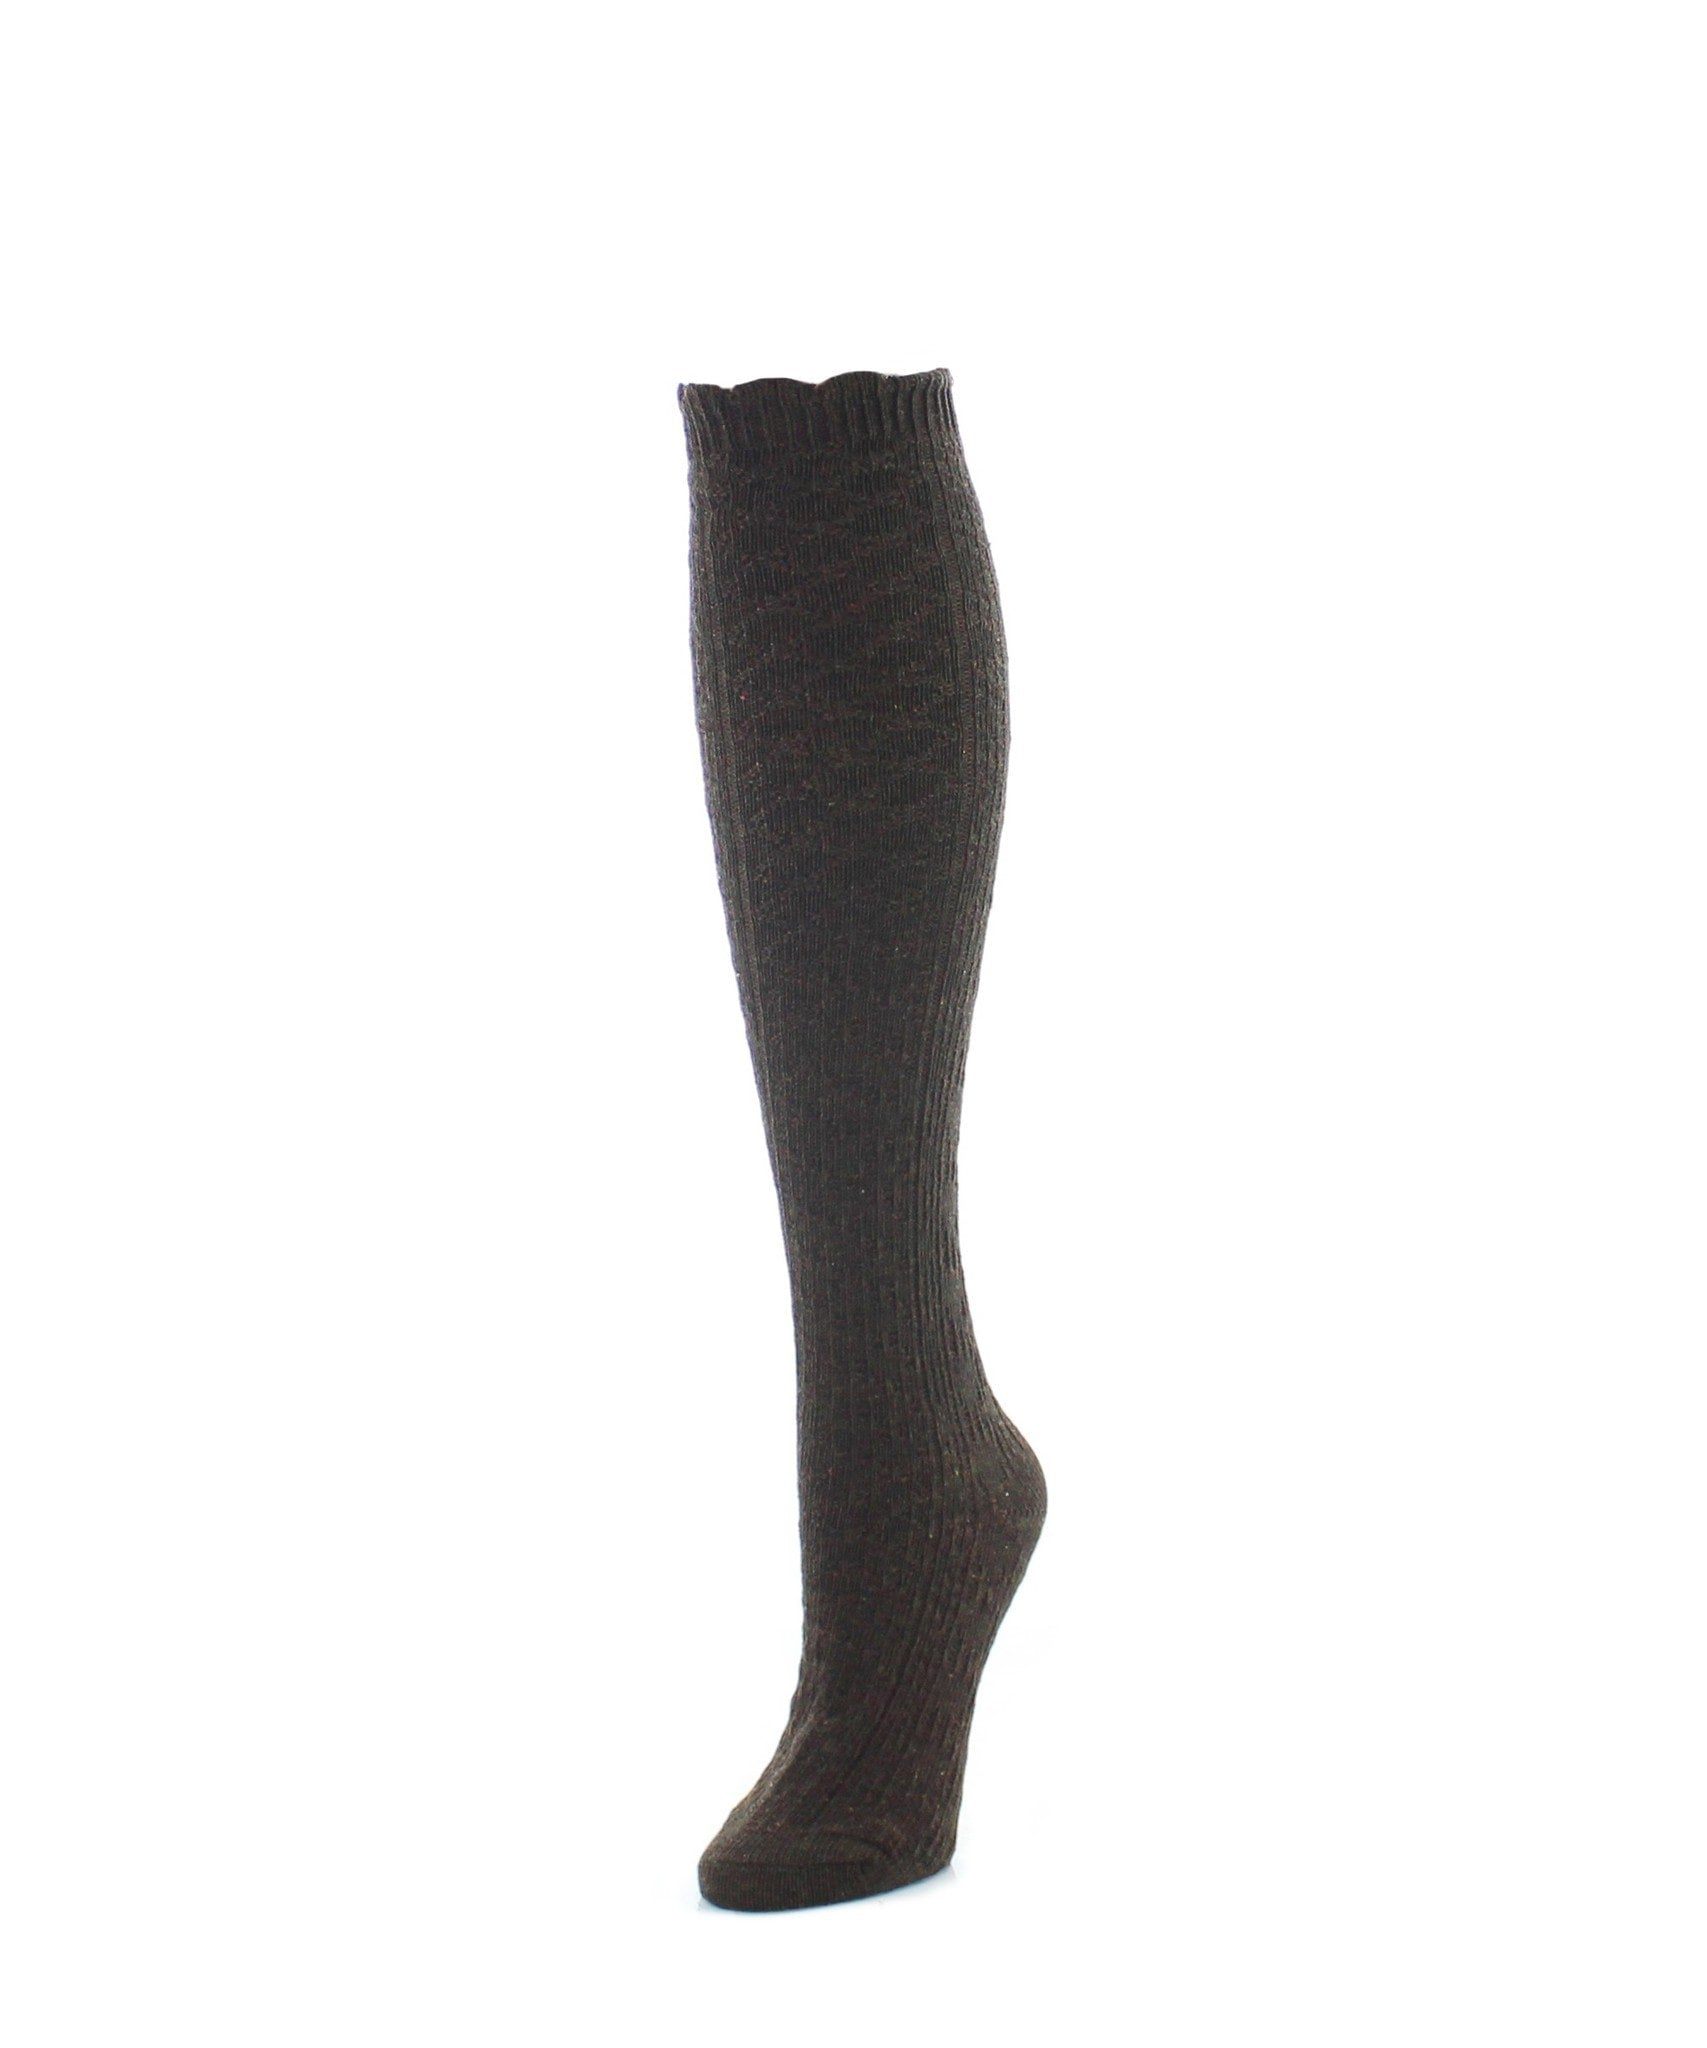 Knee High Socks | Women's Socks | Diamond Ridged - MeMoi - 2